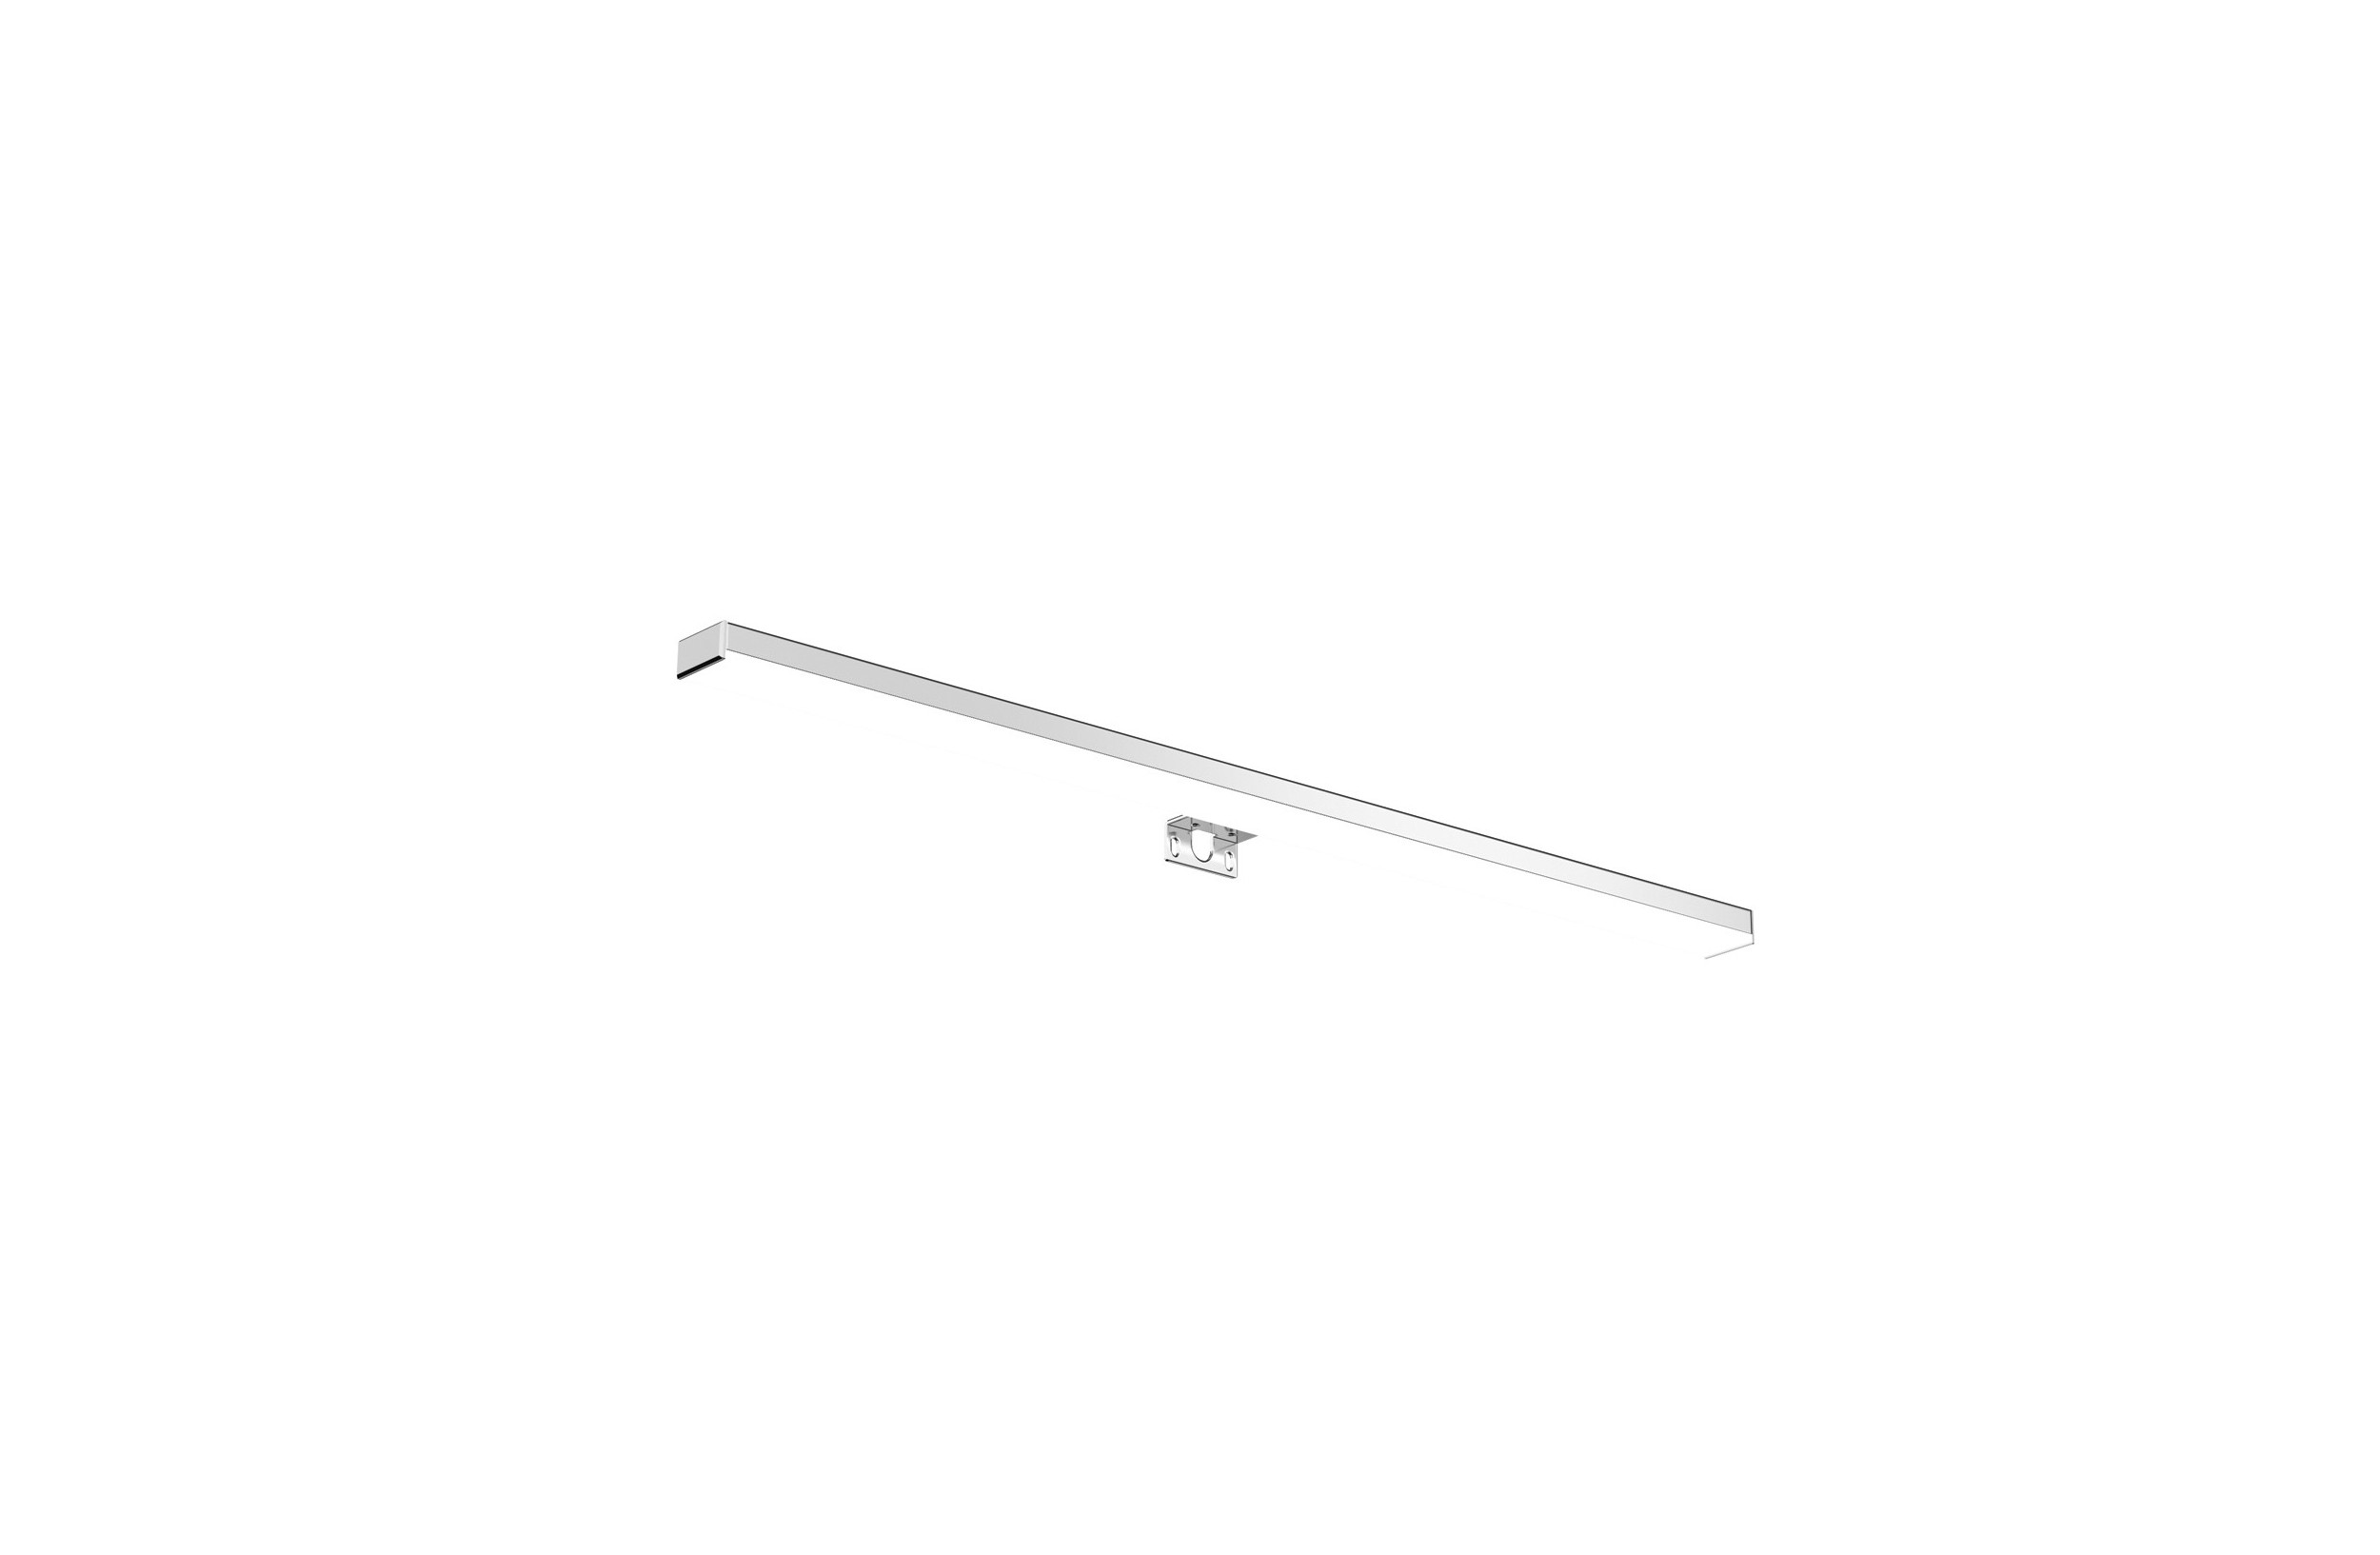 Aplique Baño Aplique Led De Pared Baño Light 50 Cm Cromo Control Remoto Cosmic